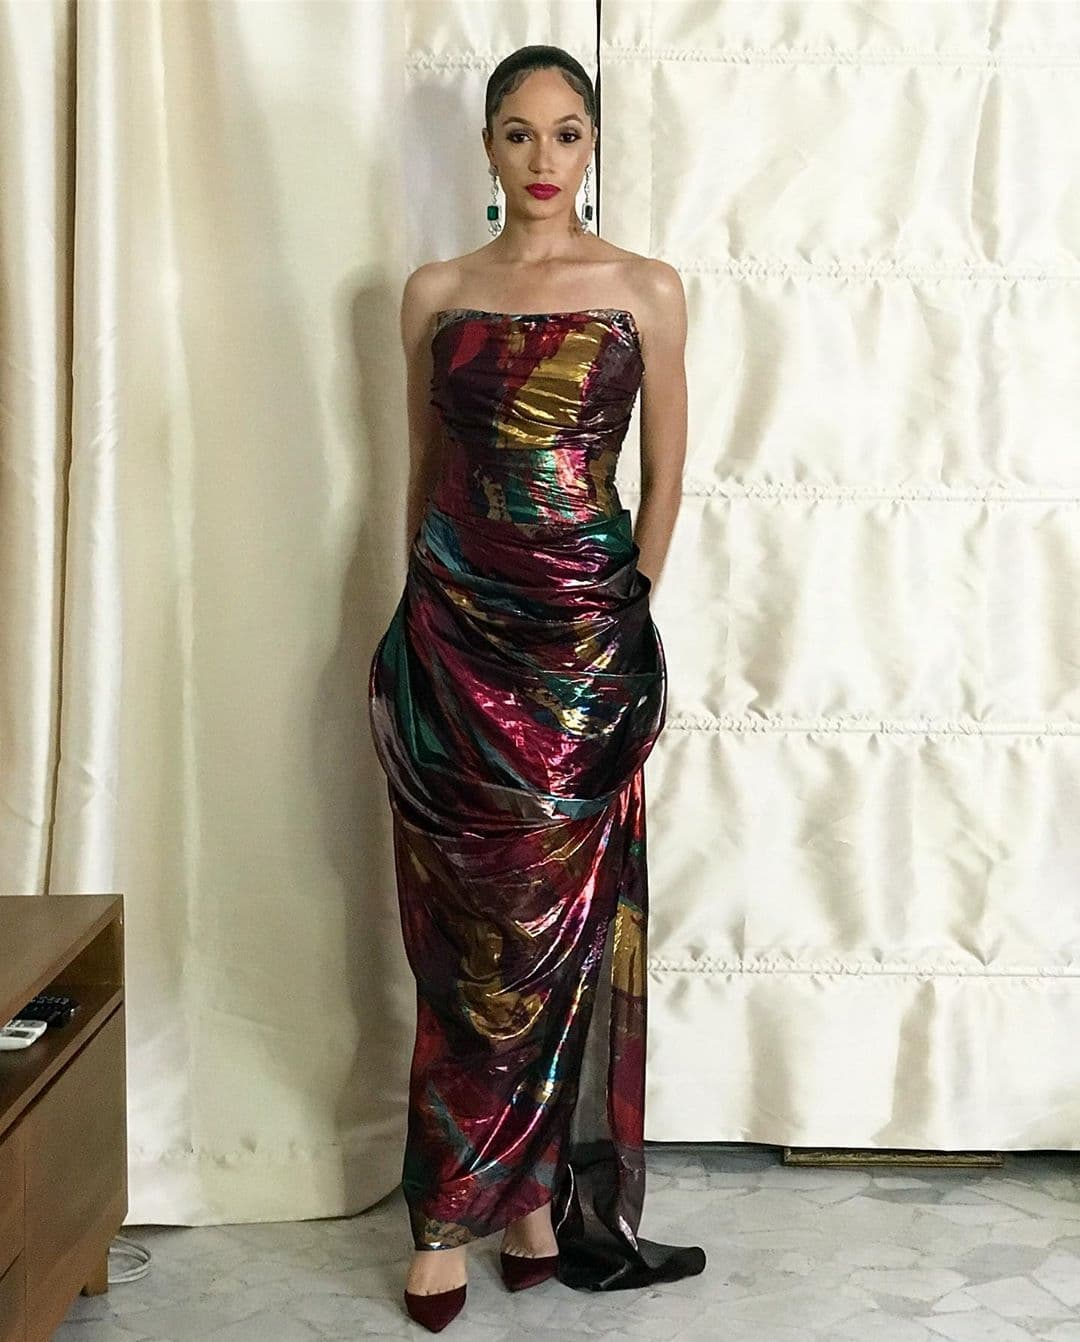 eku-edewor-ebony-life-films-tv-your-excellency-movie-premiere-inauguration-ball